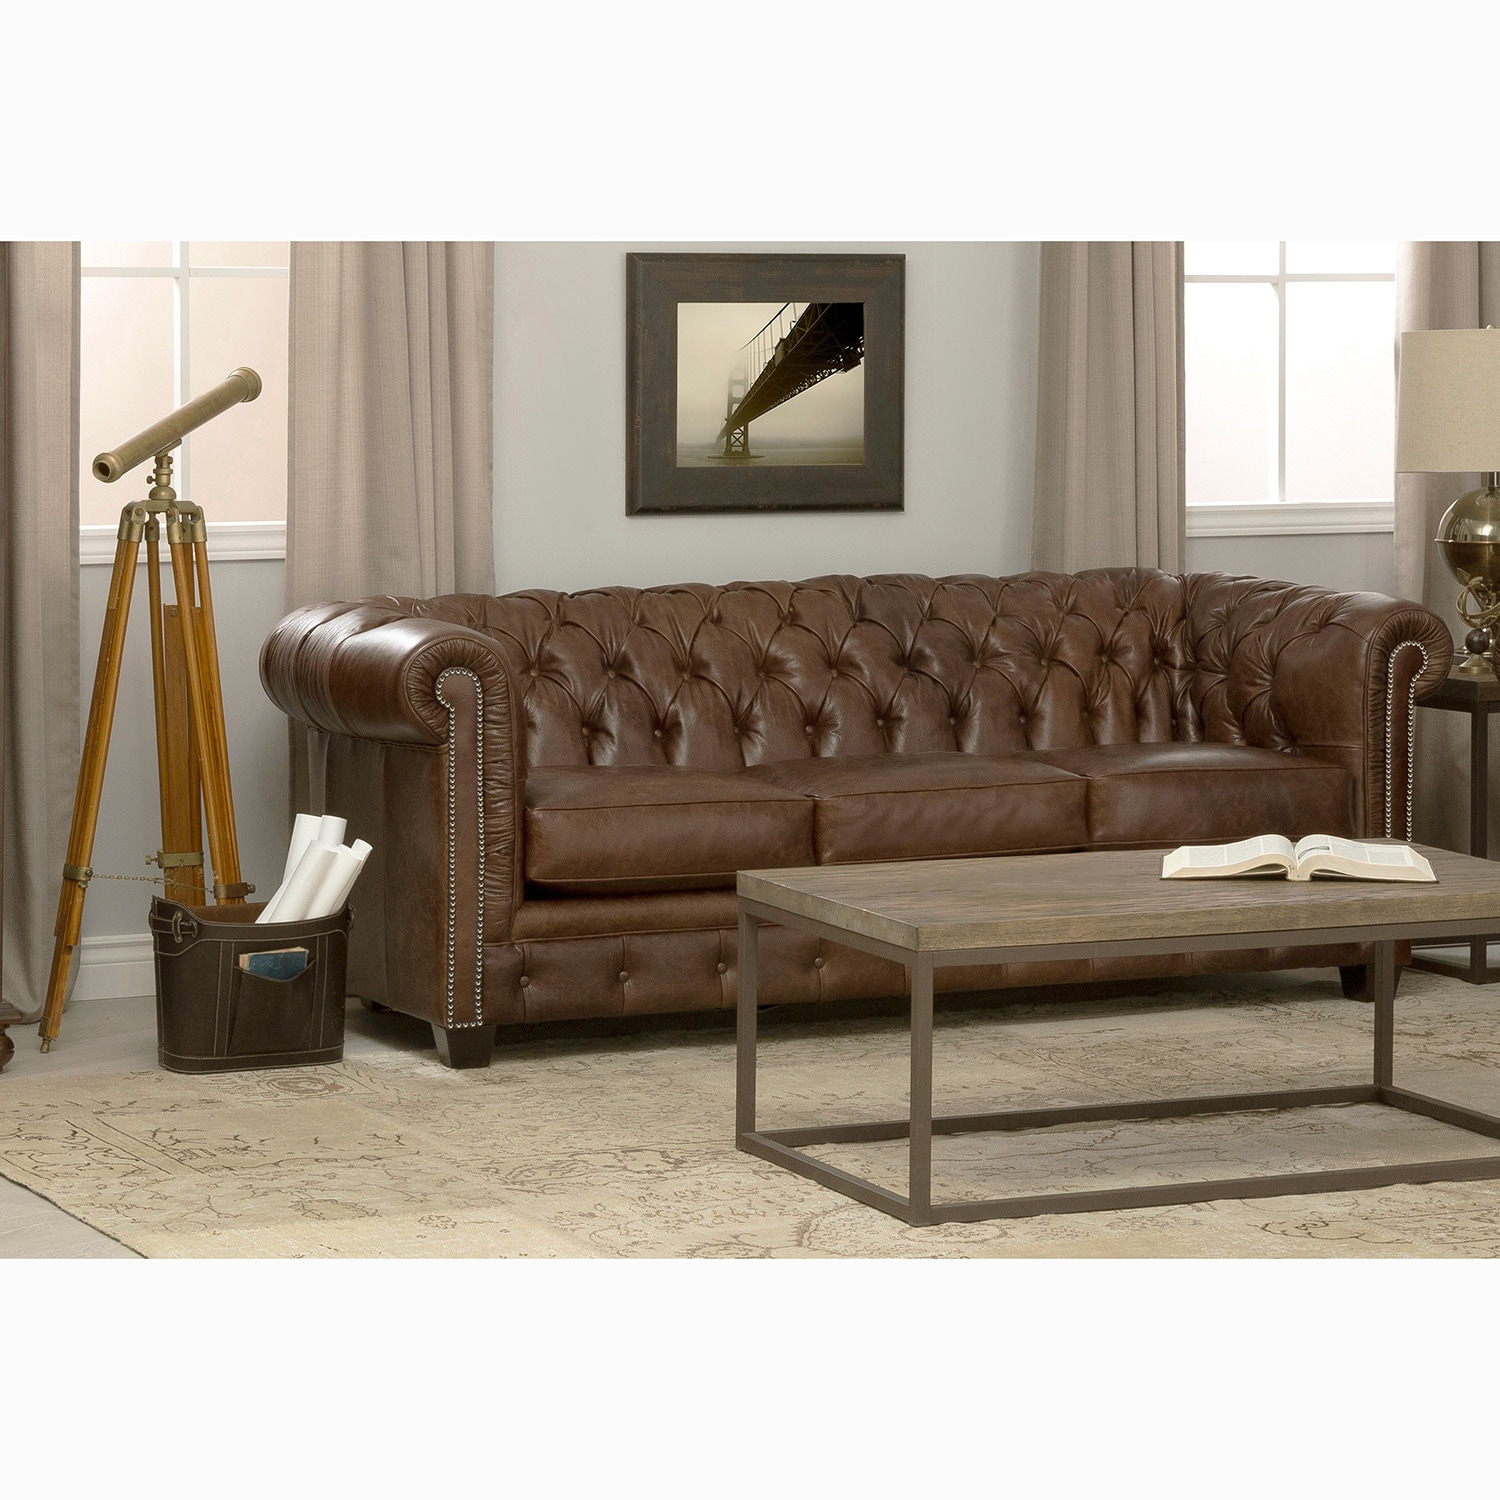 Chesterfield Sofa Japan Hancock Tufted Brown Leather Chesterfield Sofa